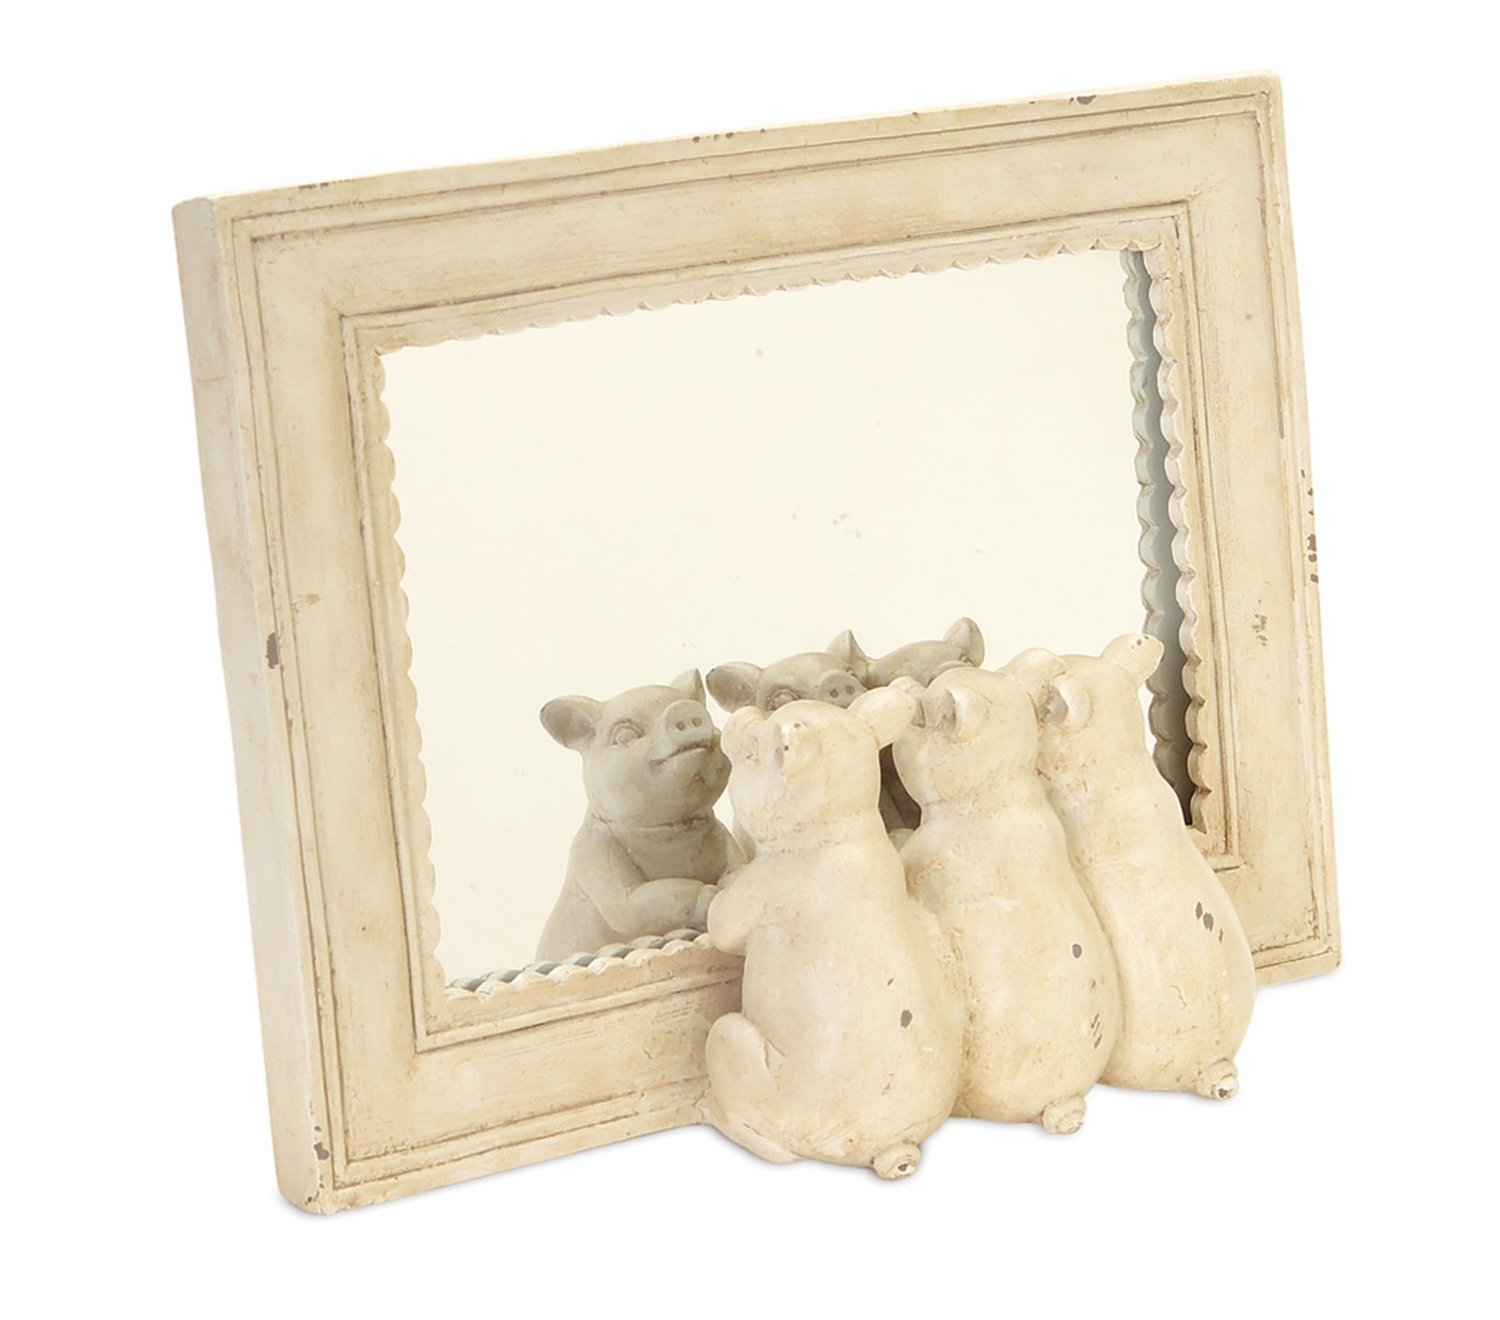 Scalloped Edge Mirror with Three Little Pigs